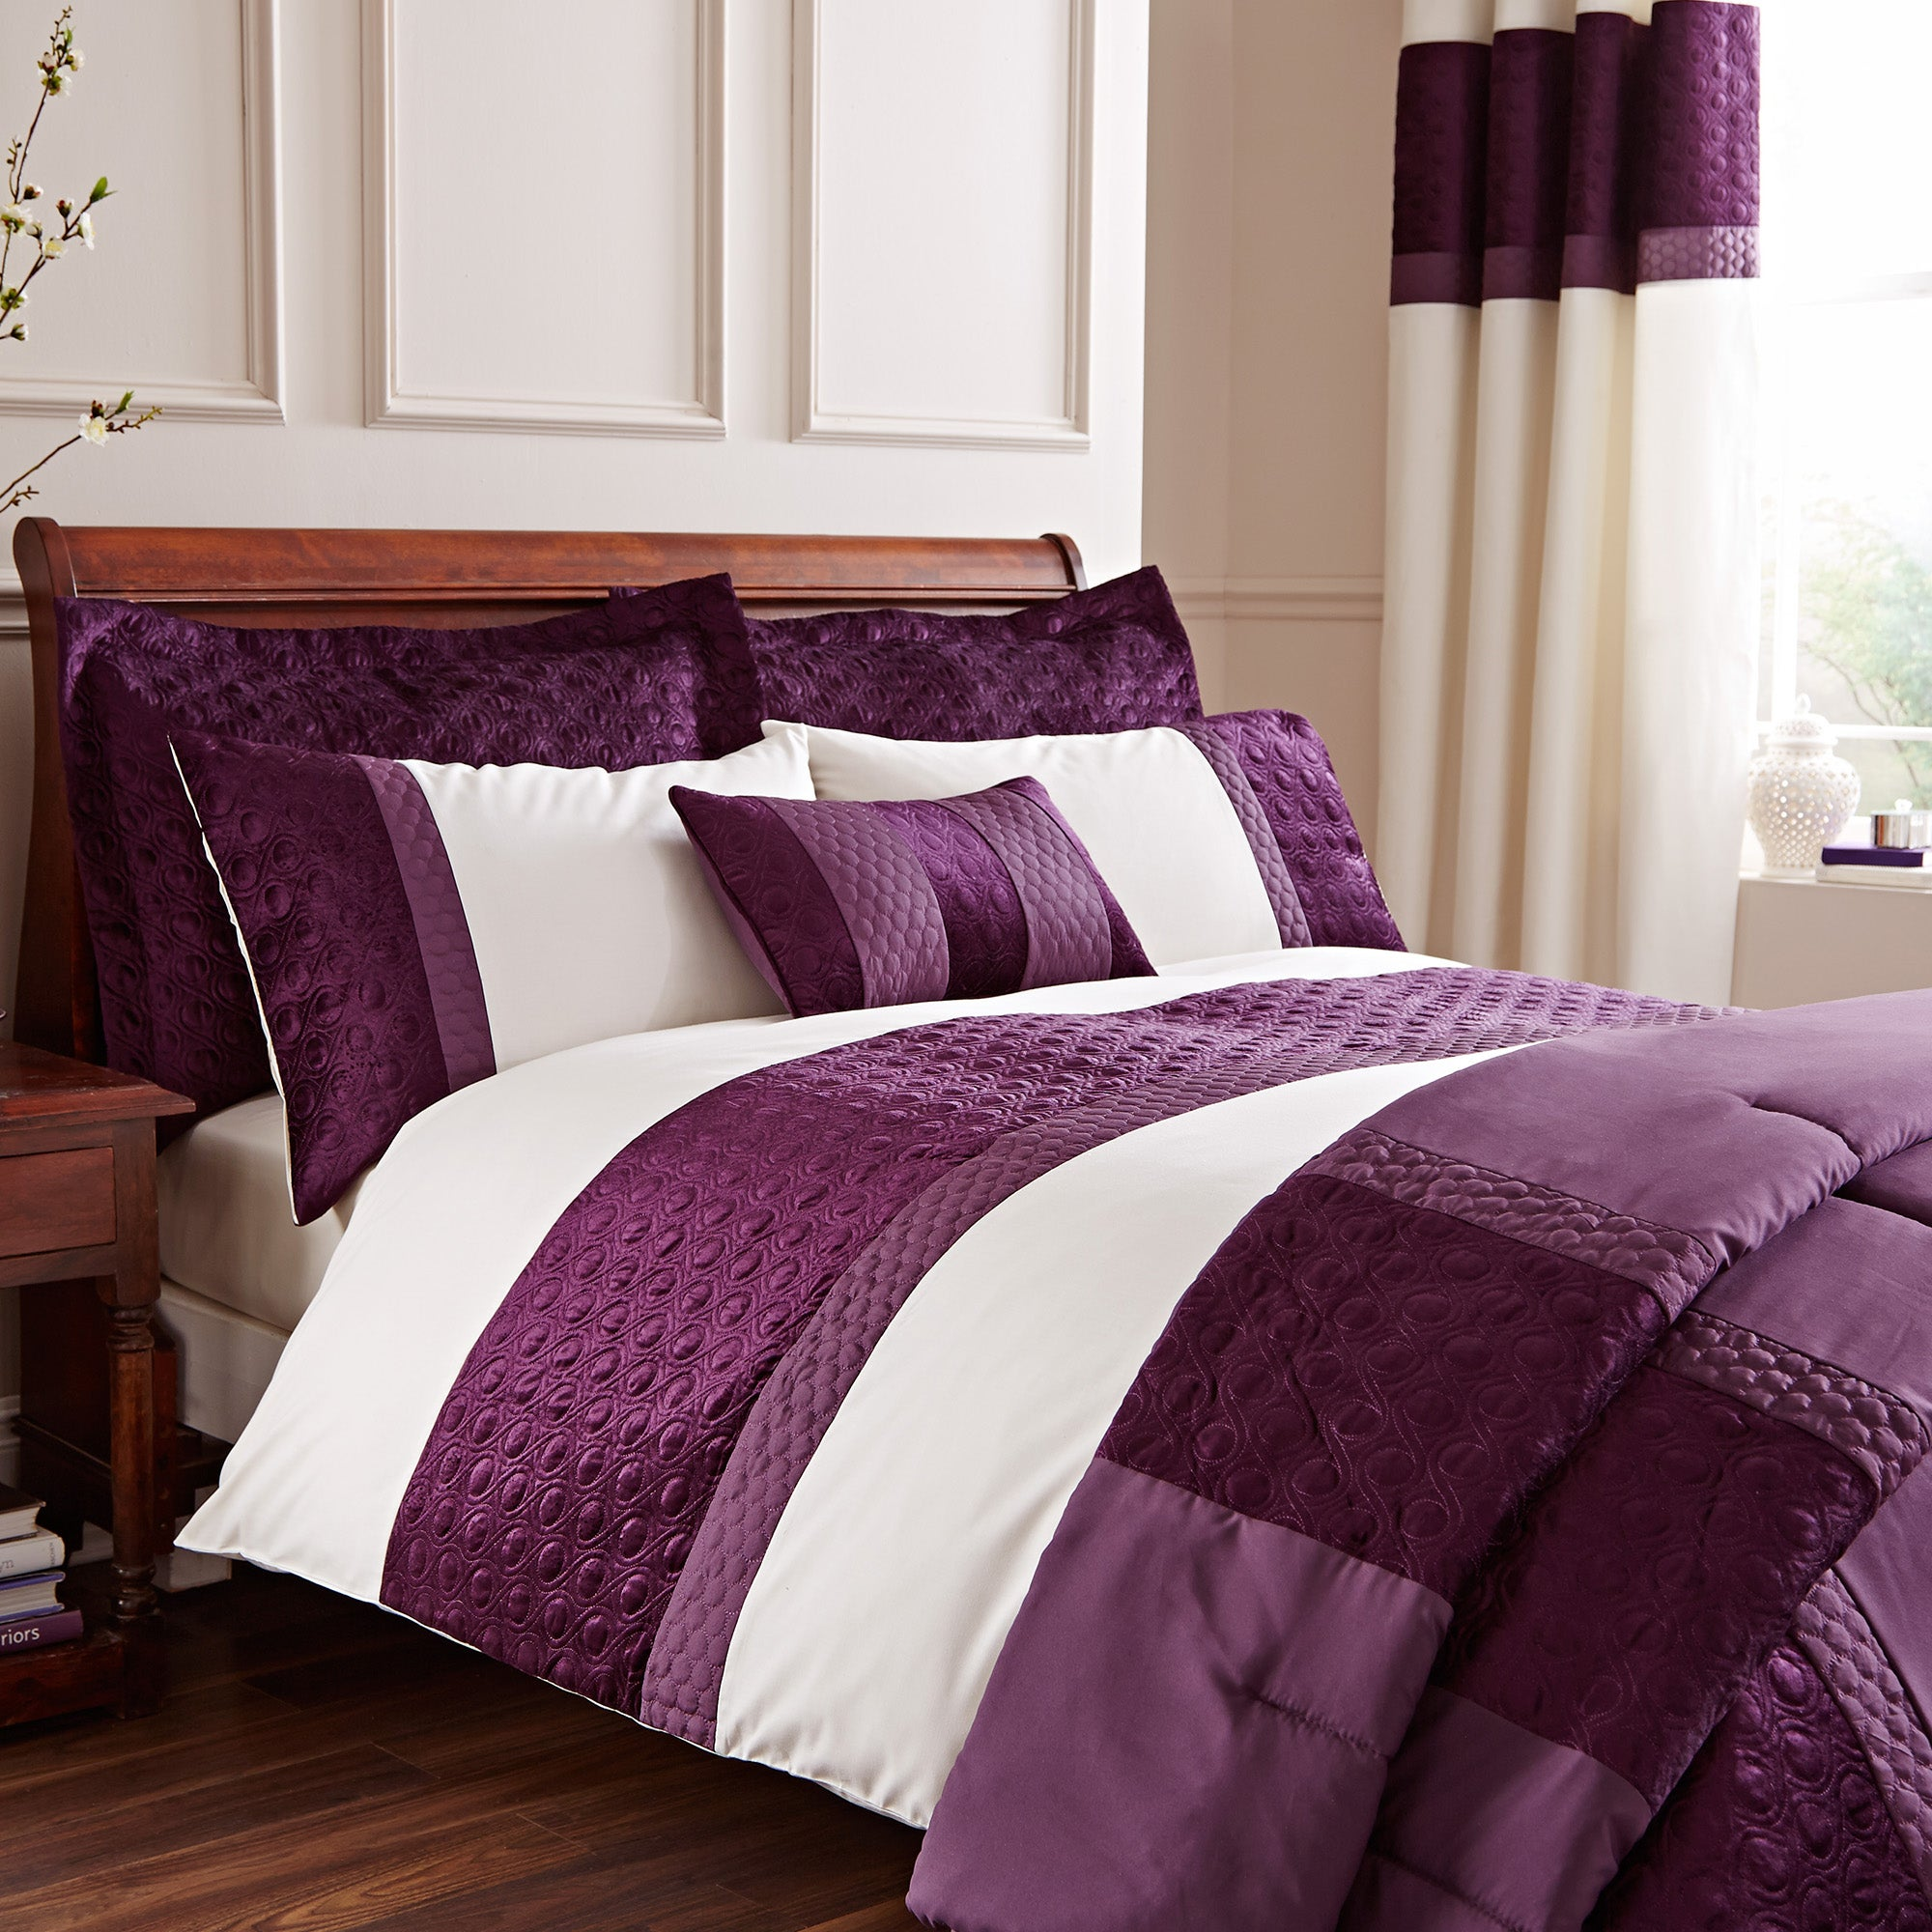 Adalene Plum Bed Linen Collection